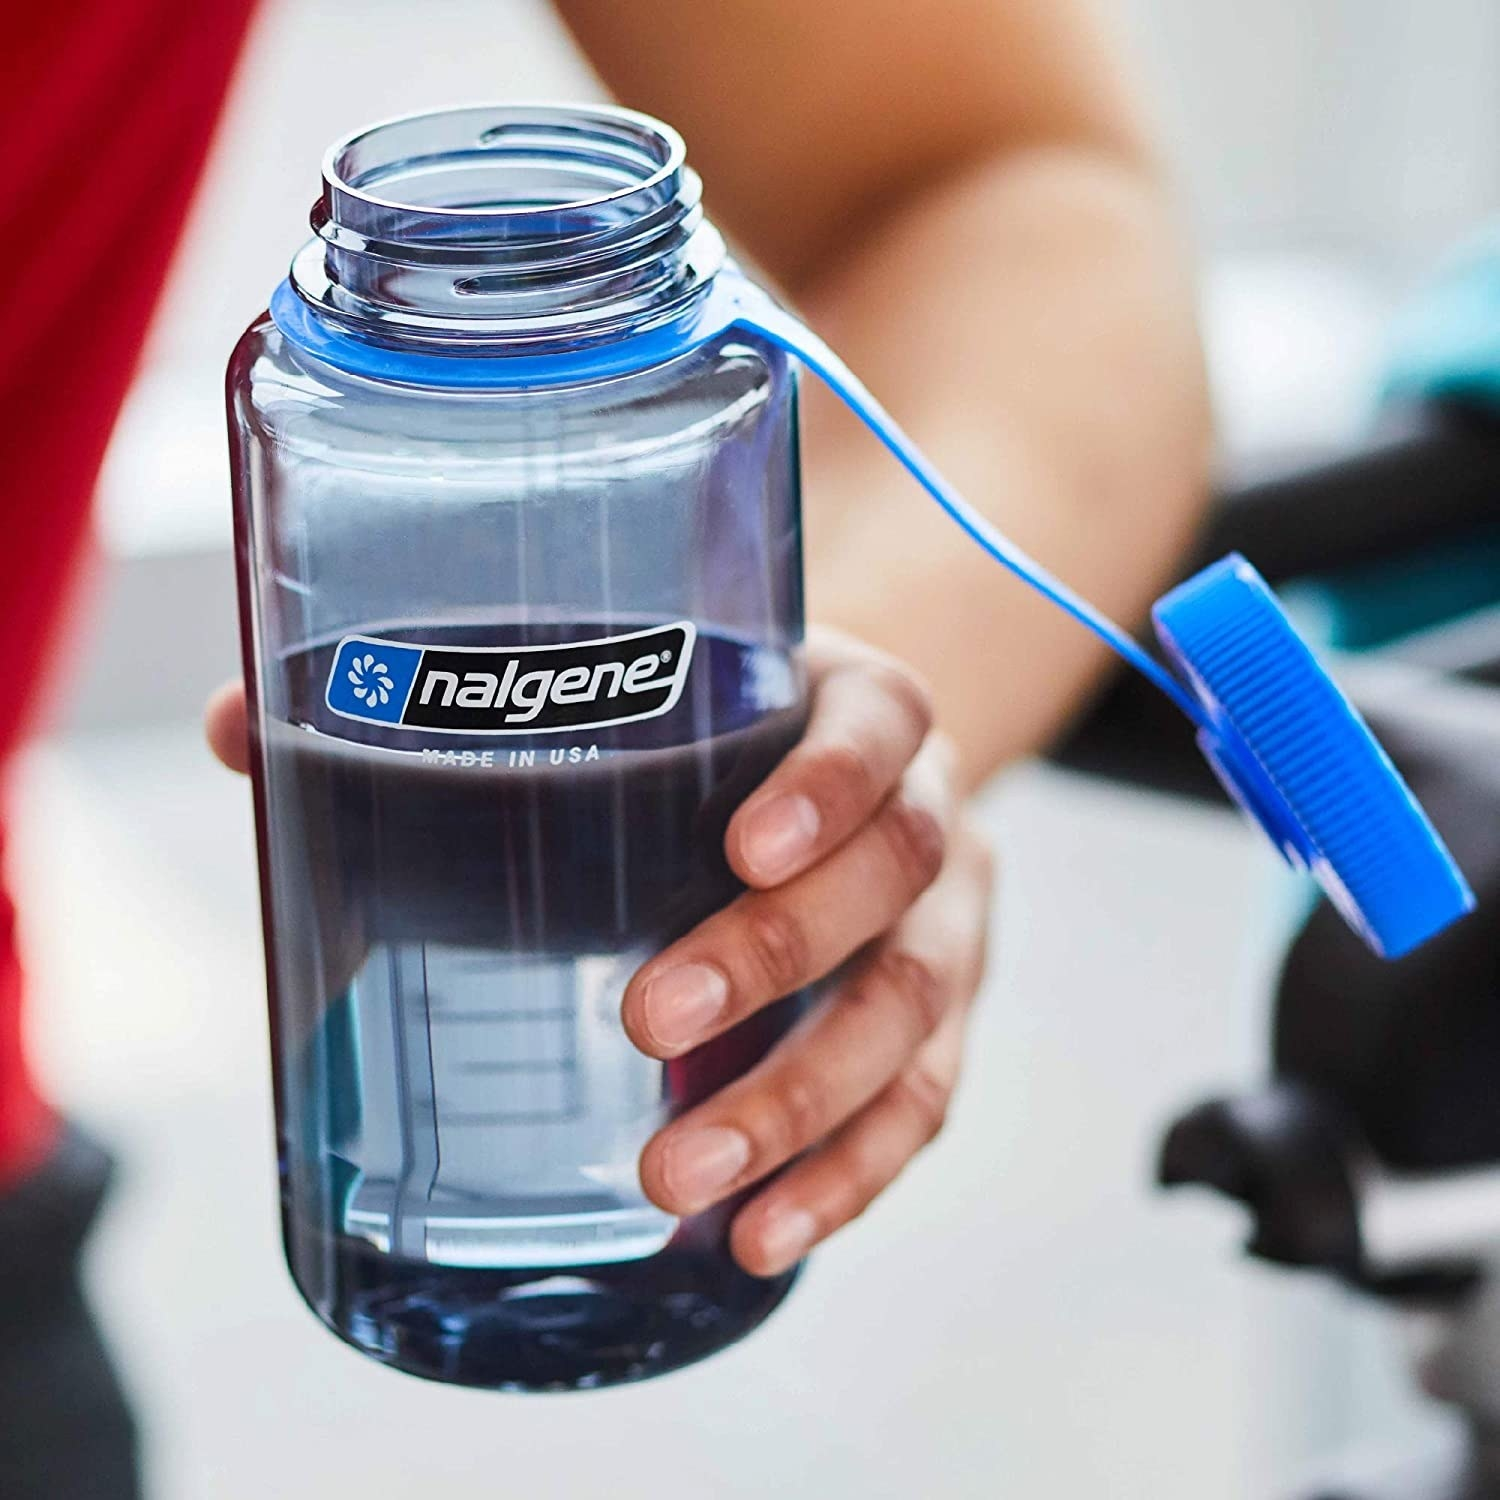 A clear Nalgene bottle with a blue top filled with water